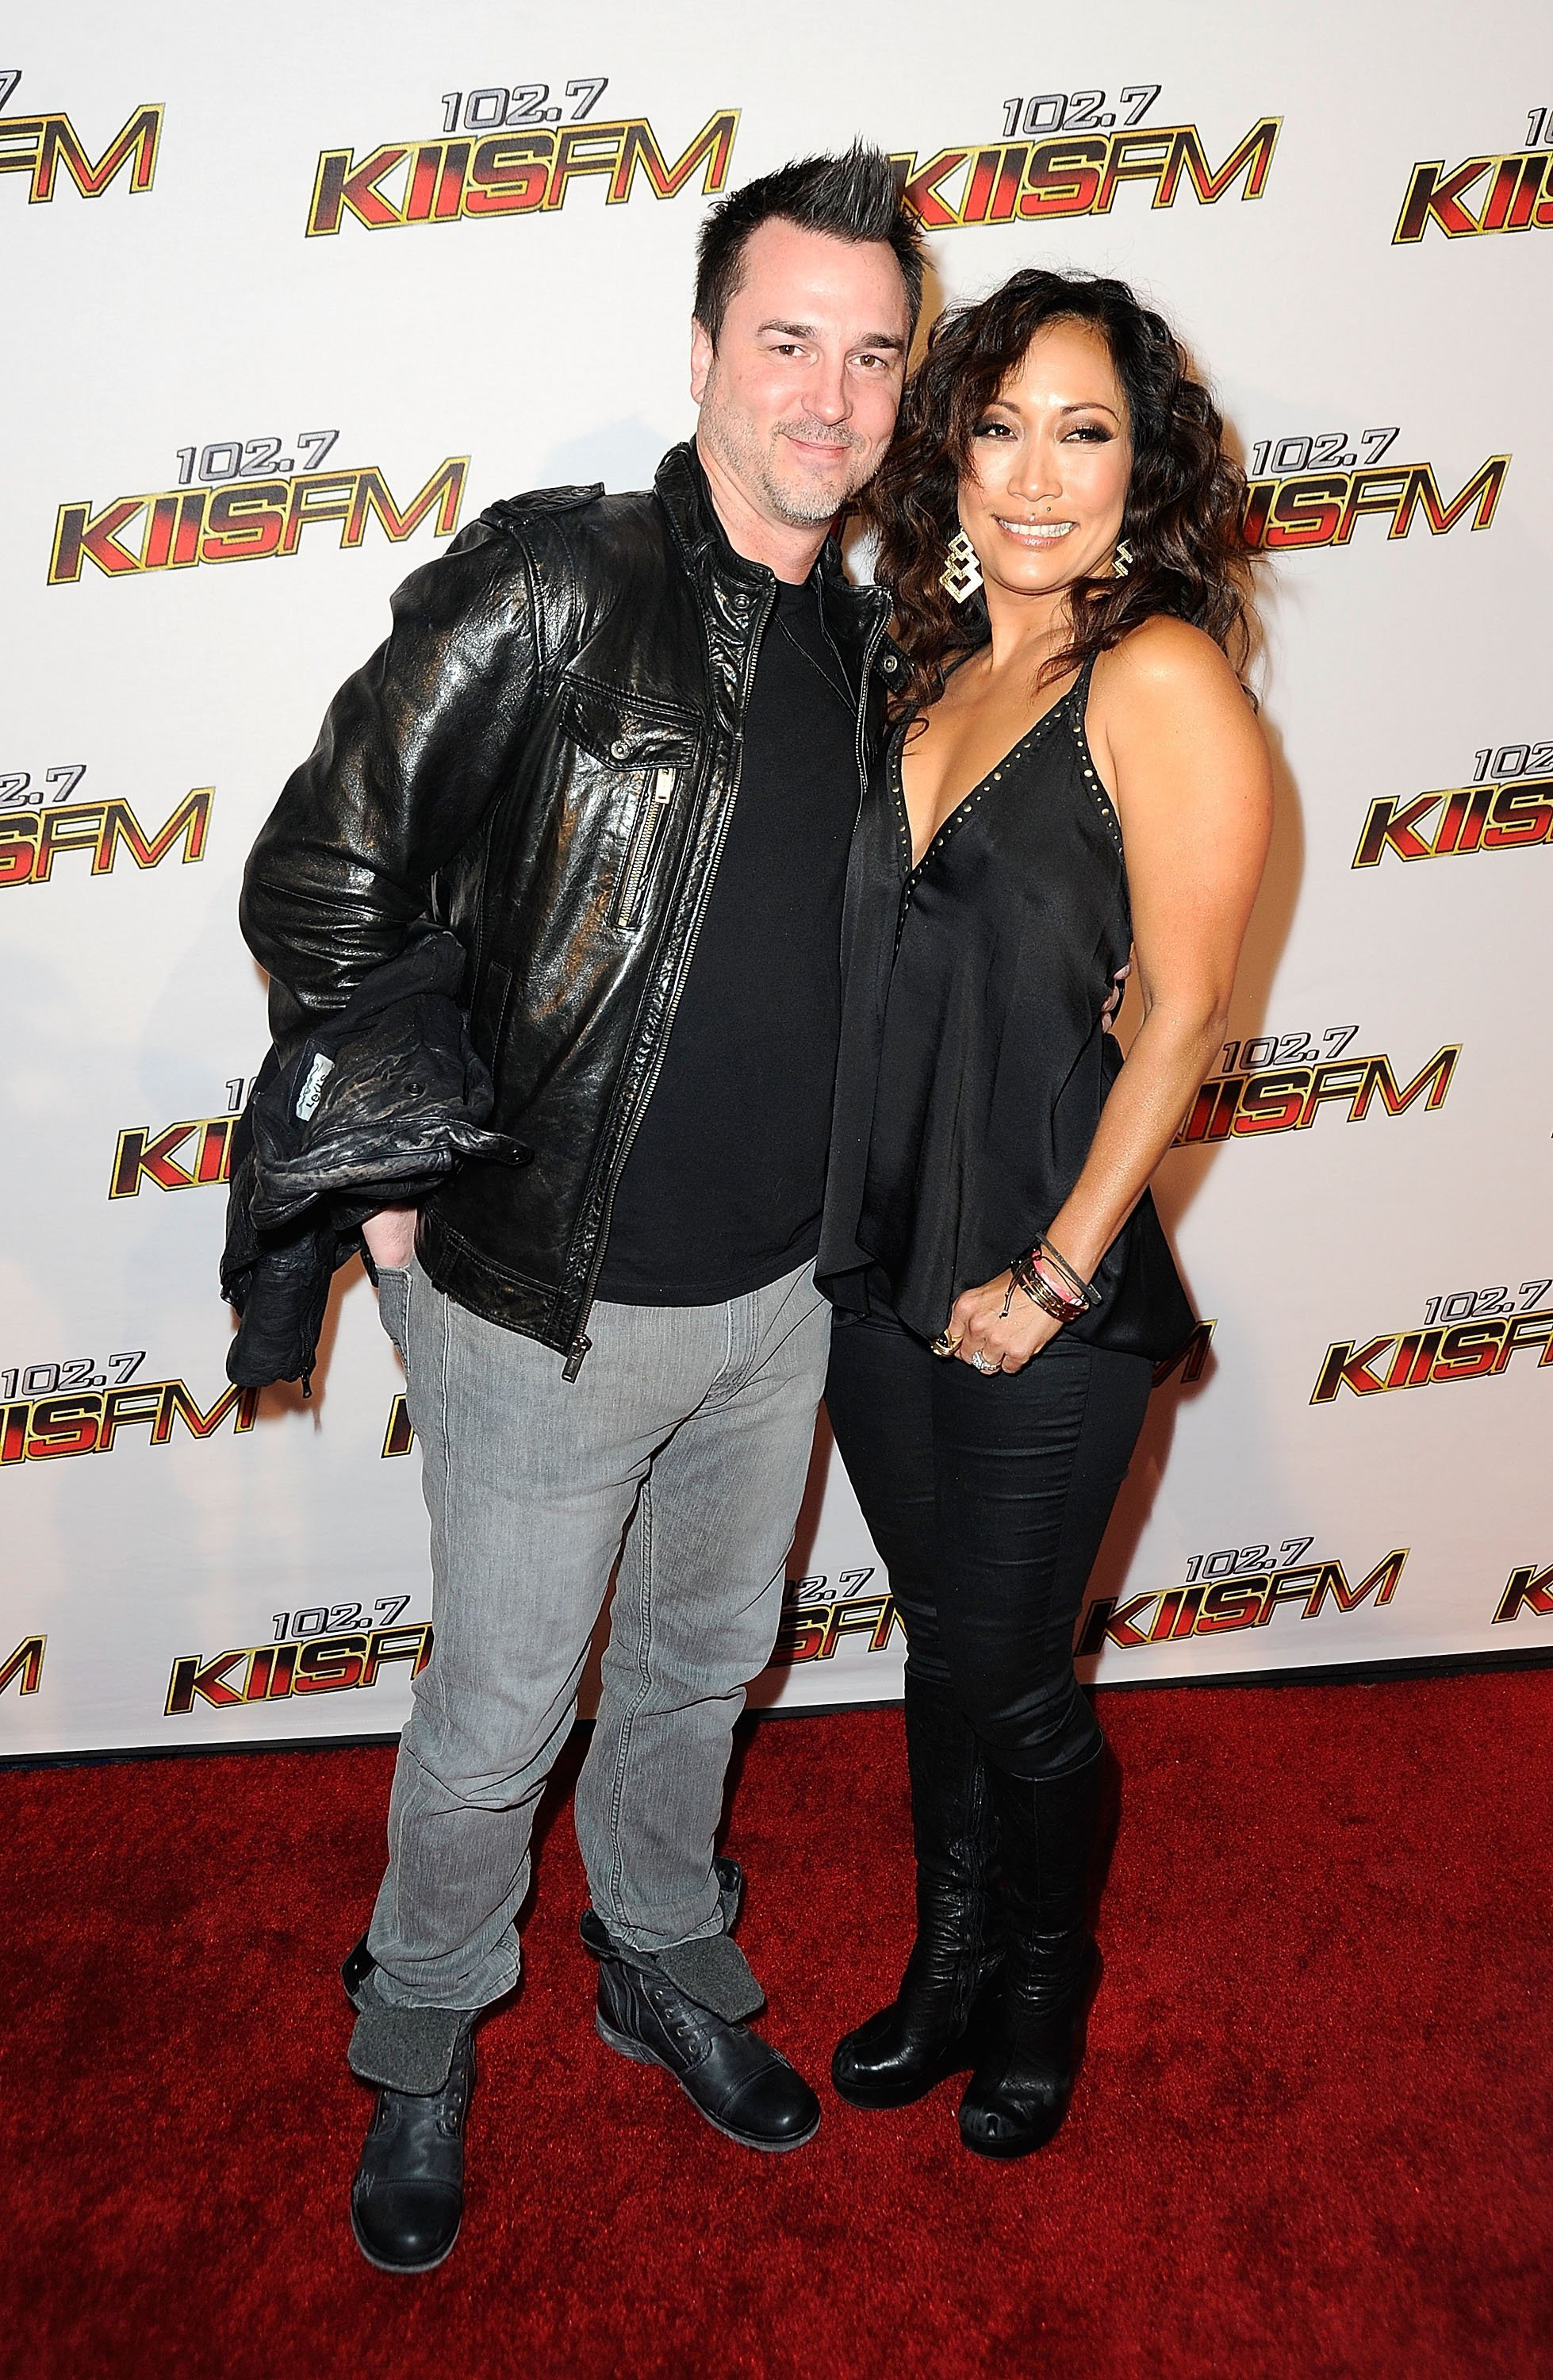 Carrie Ann Inaba and Jesse Sloan arrive at the KIIS FM's Jingle Ball 2011. | Source: Getty Images